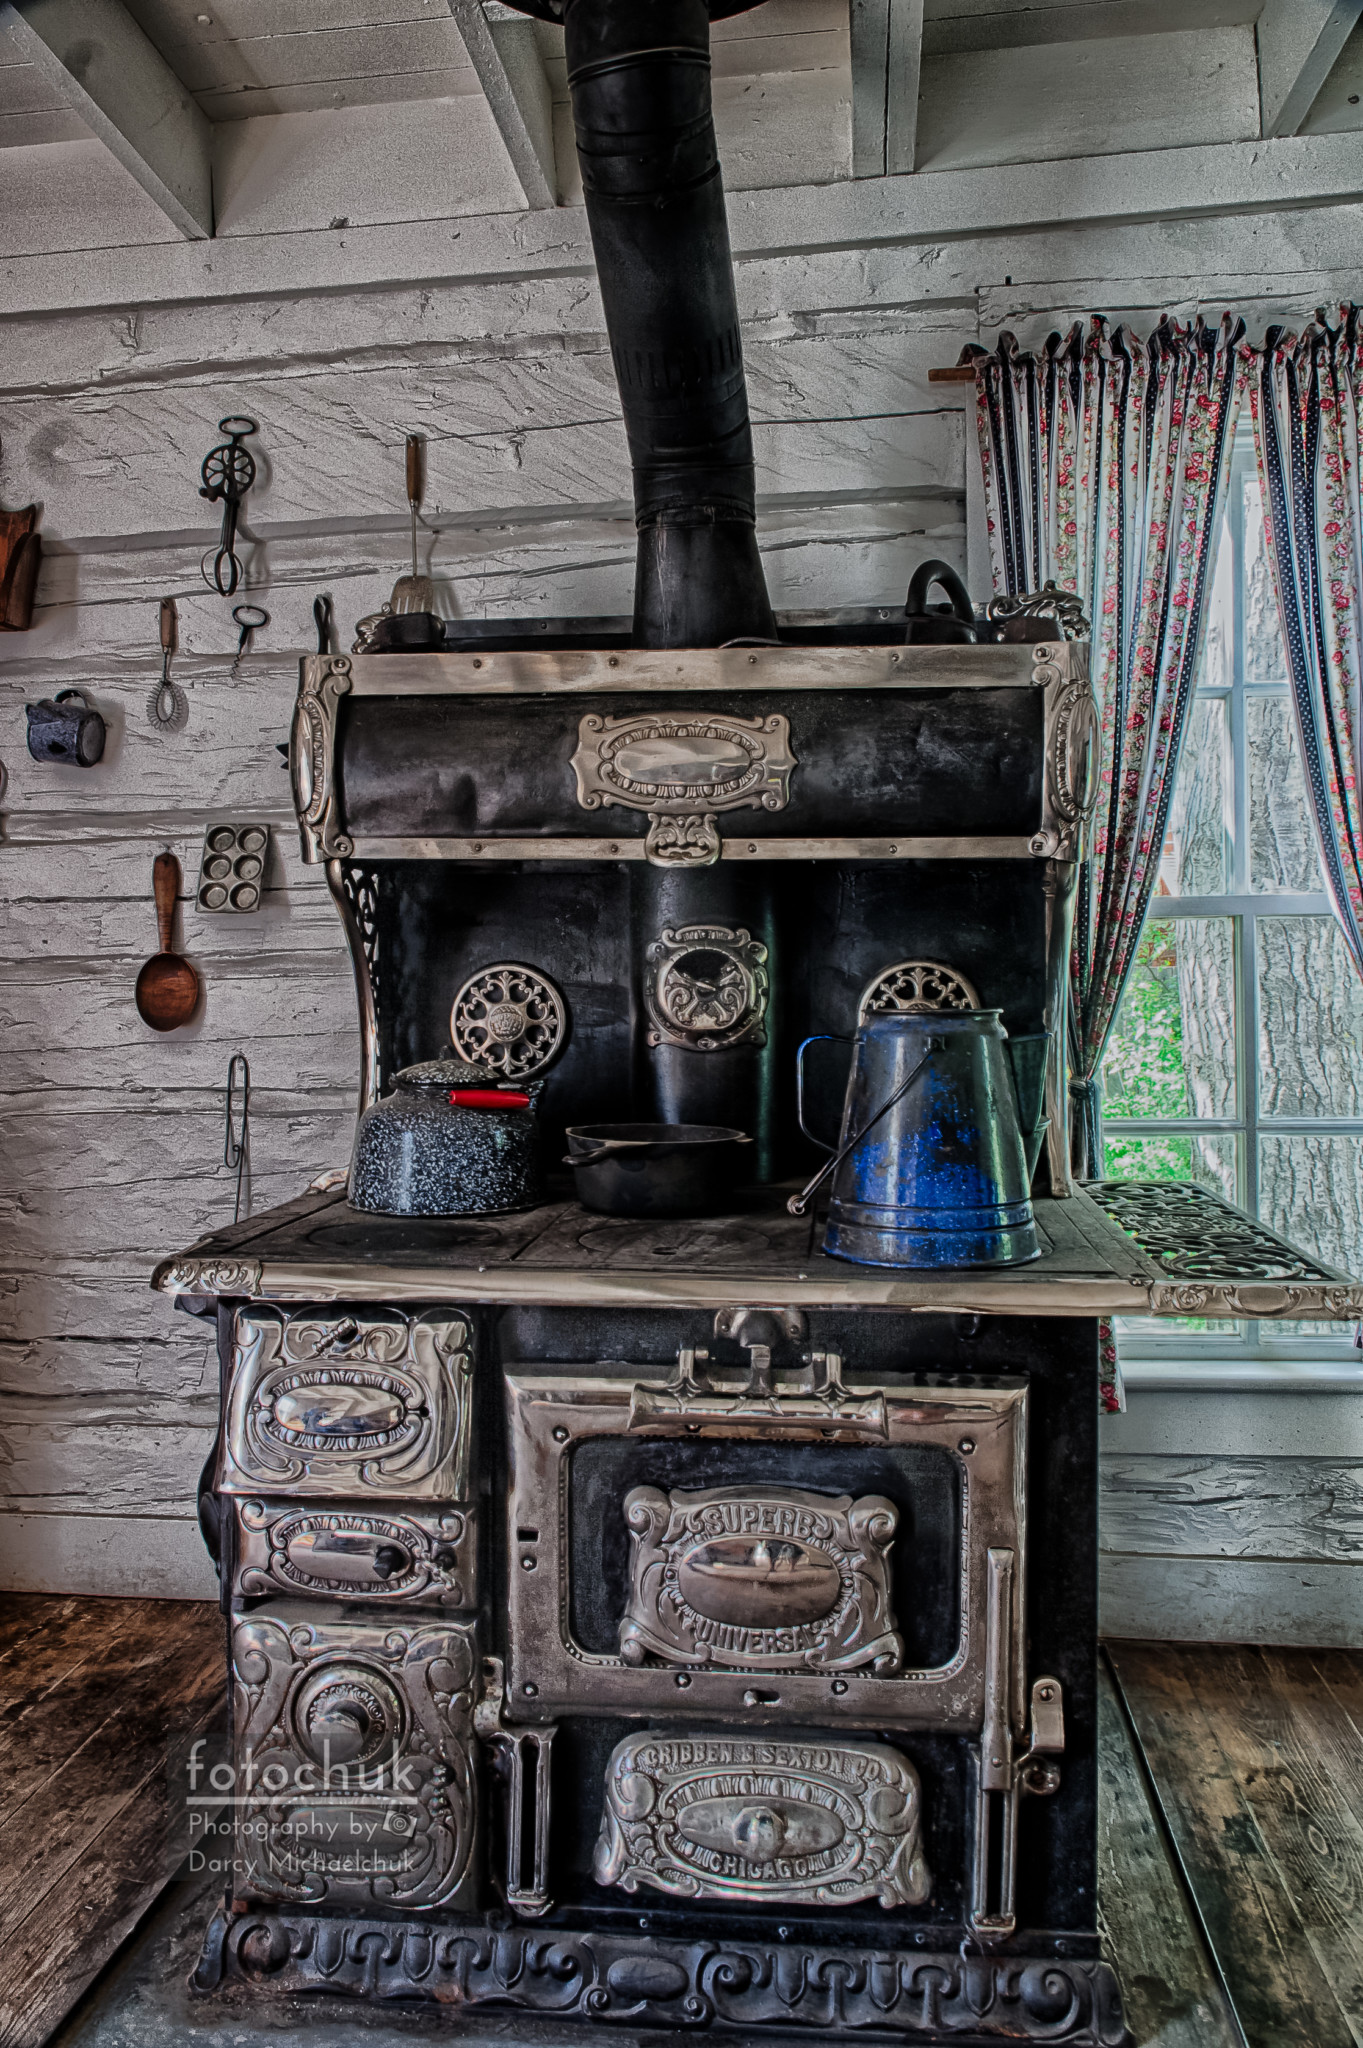 Old Stove  by Darcy Michaelchuk